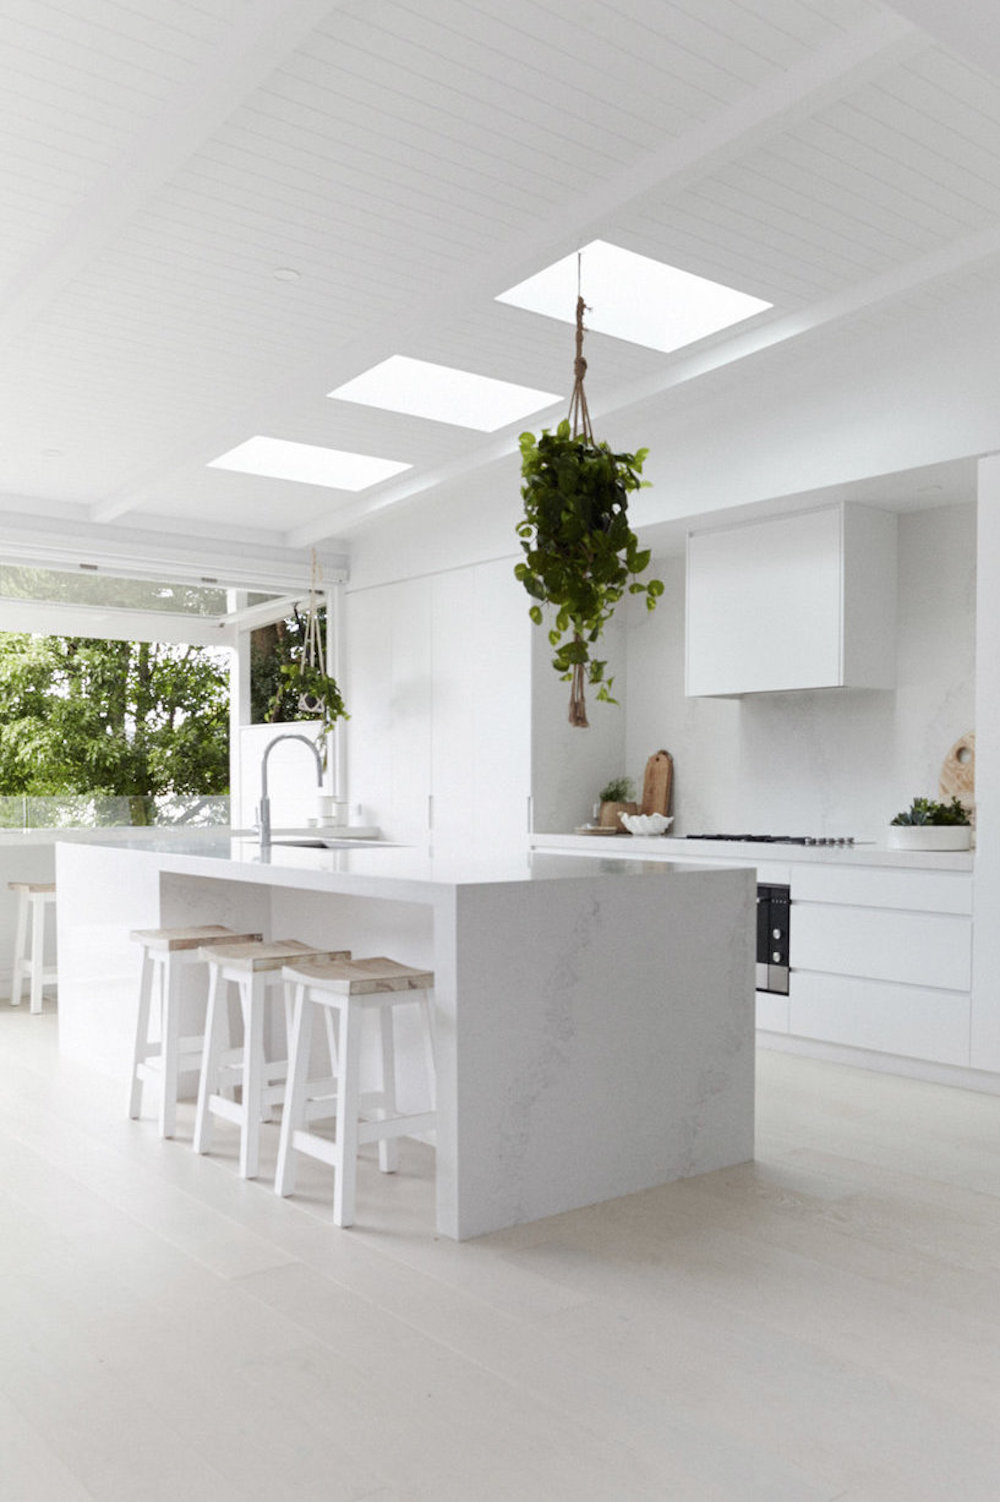 Kitchen with sun roof window